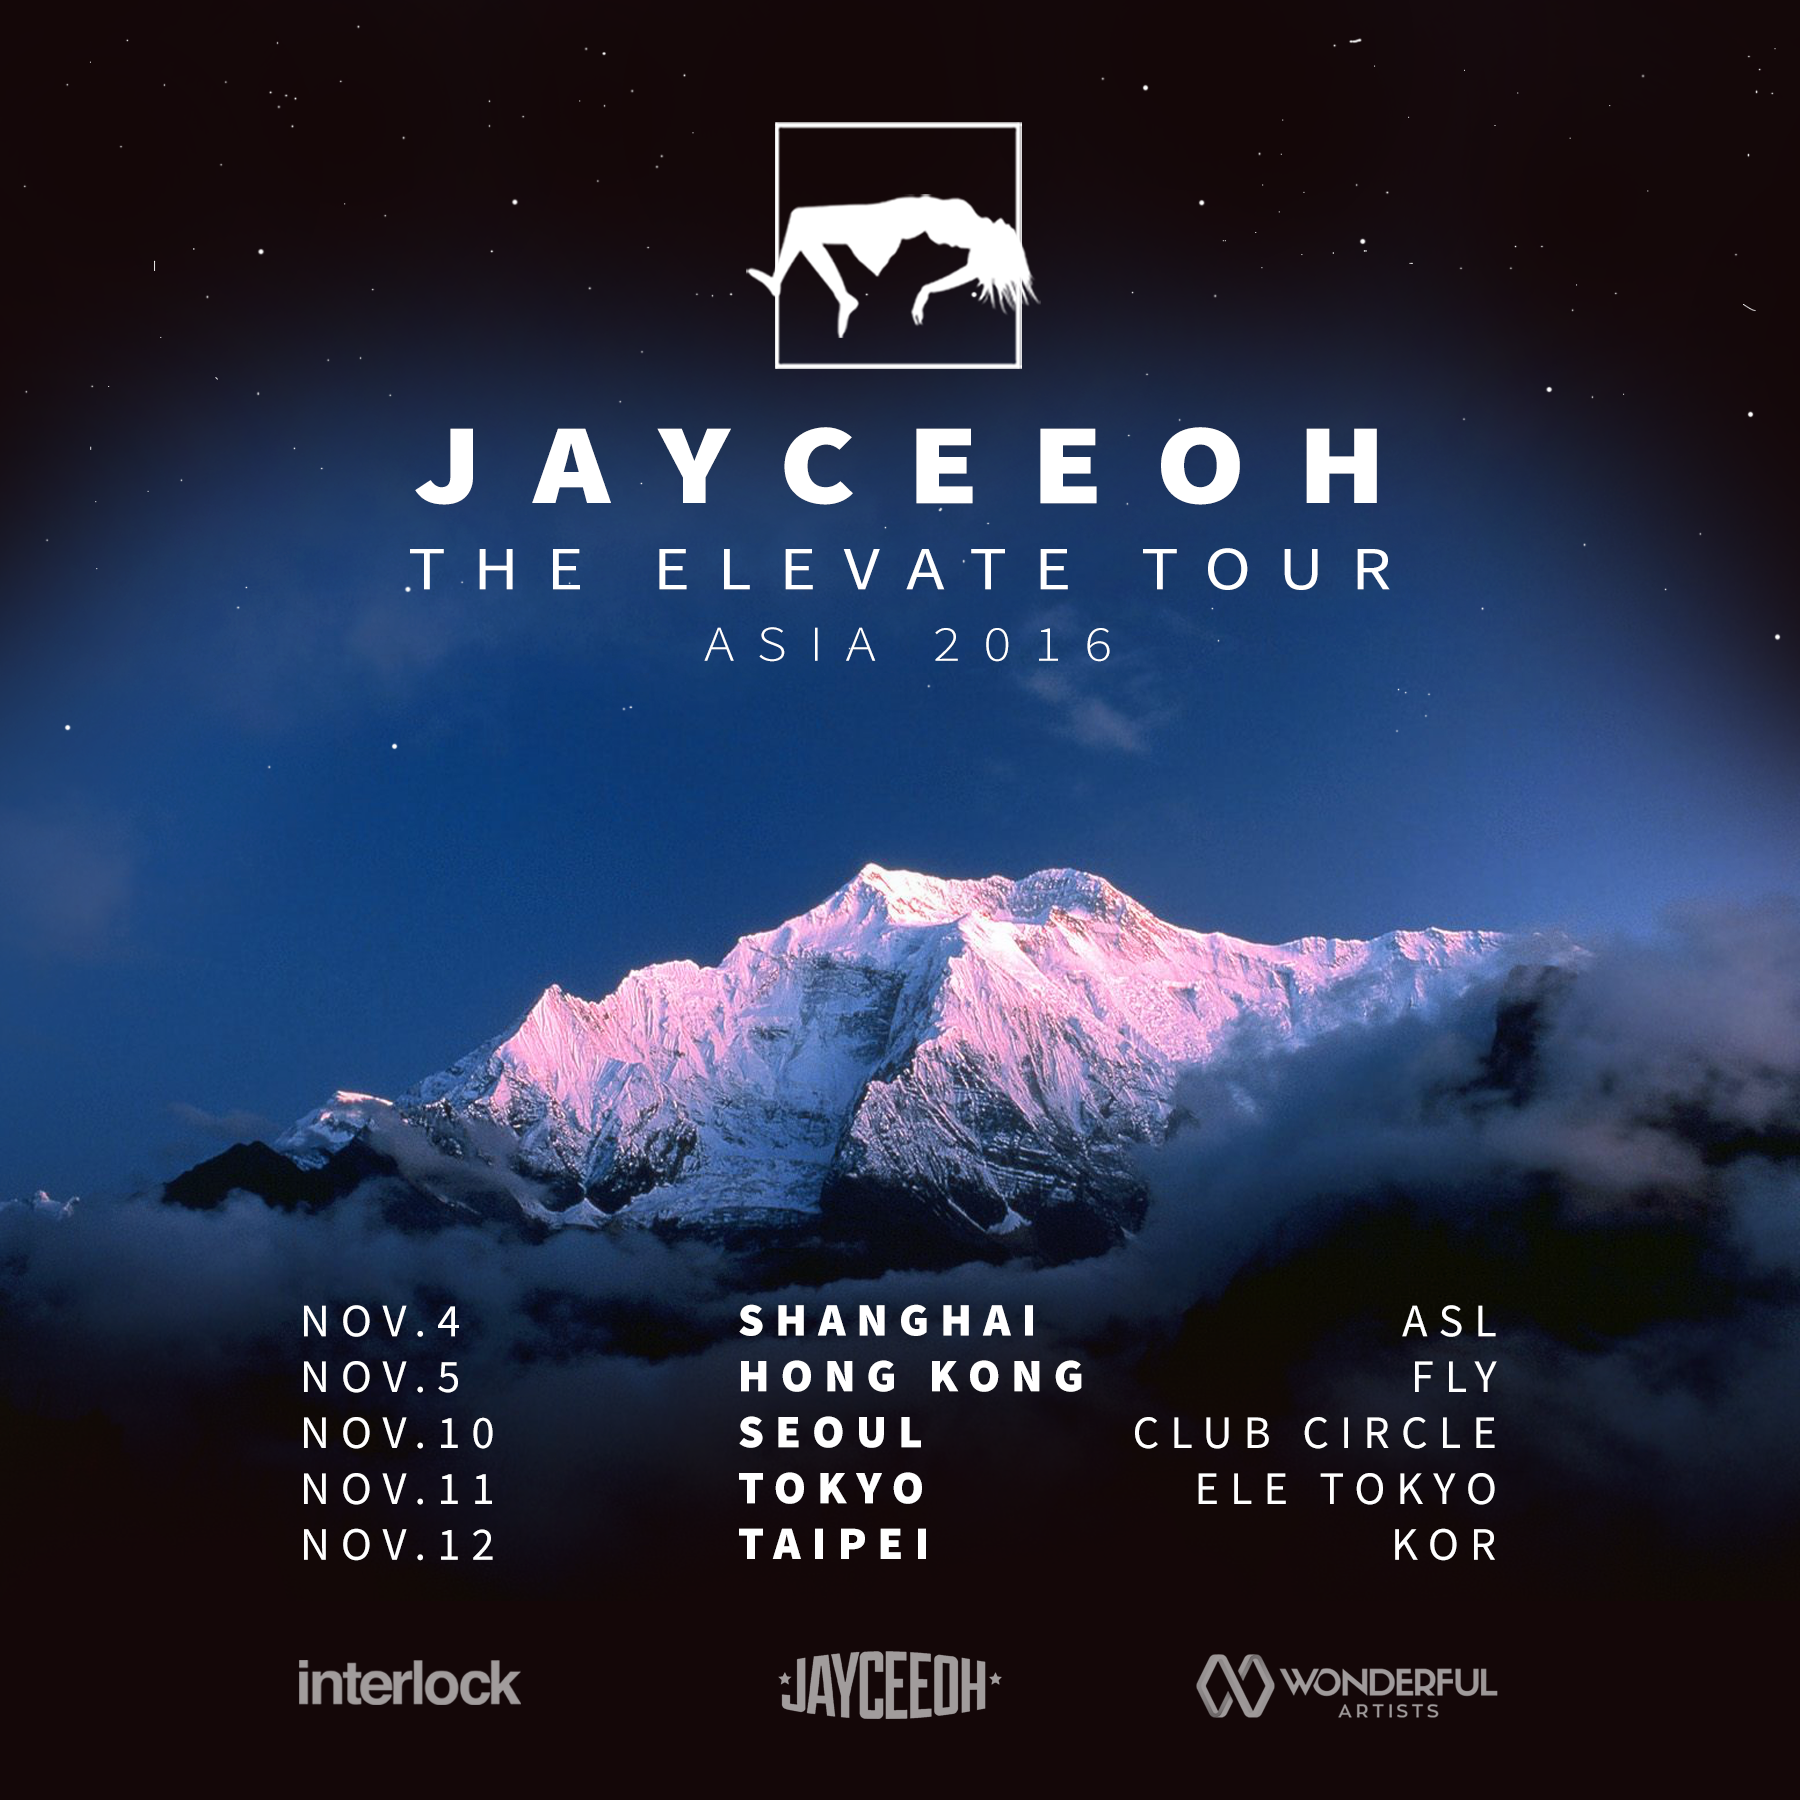 jayceeoh-asia-admat-updated-3